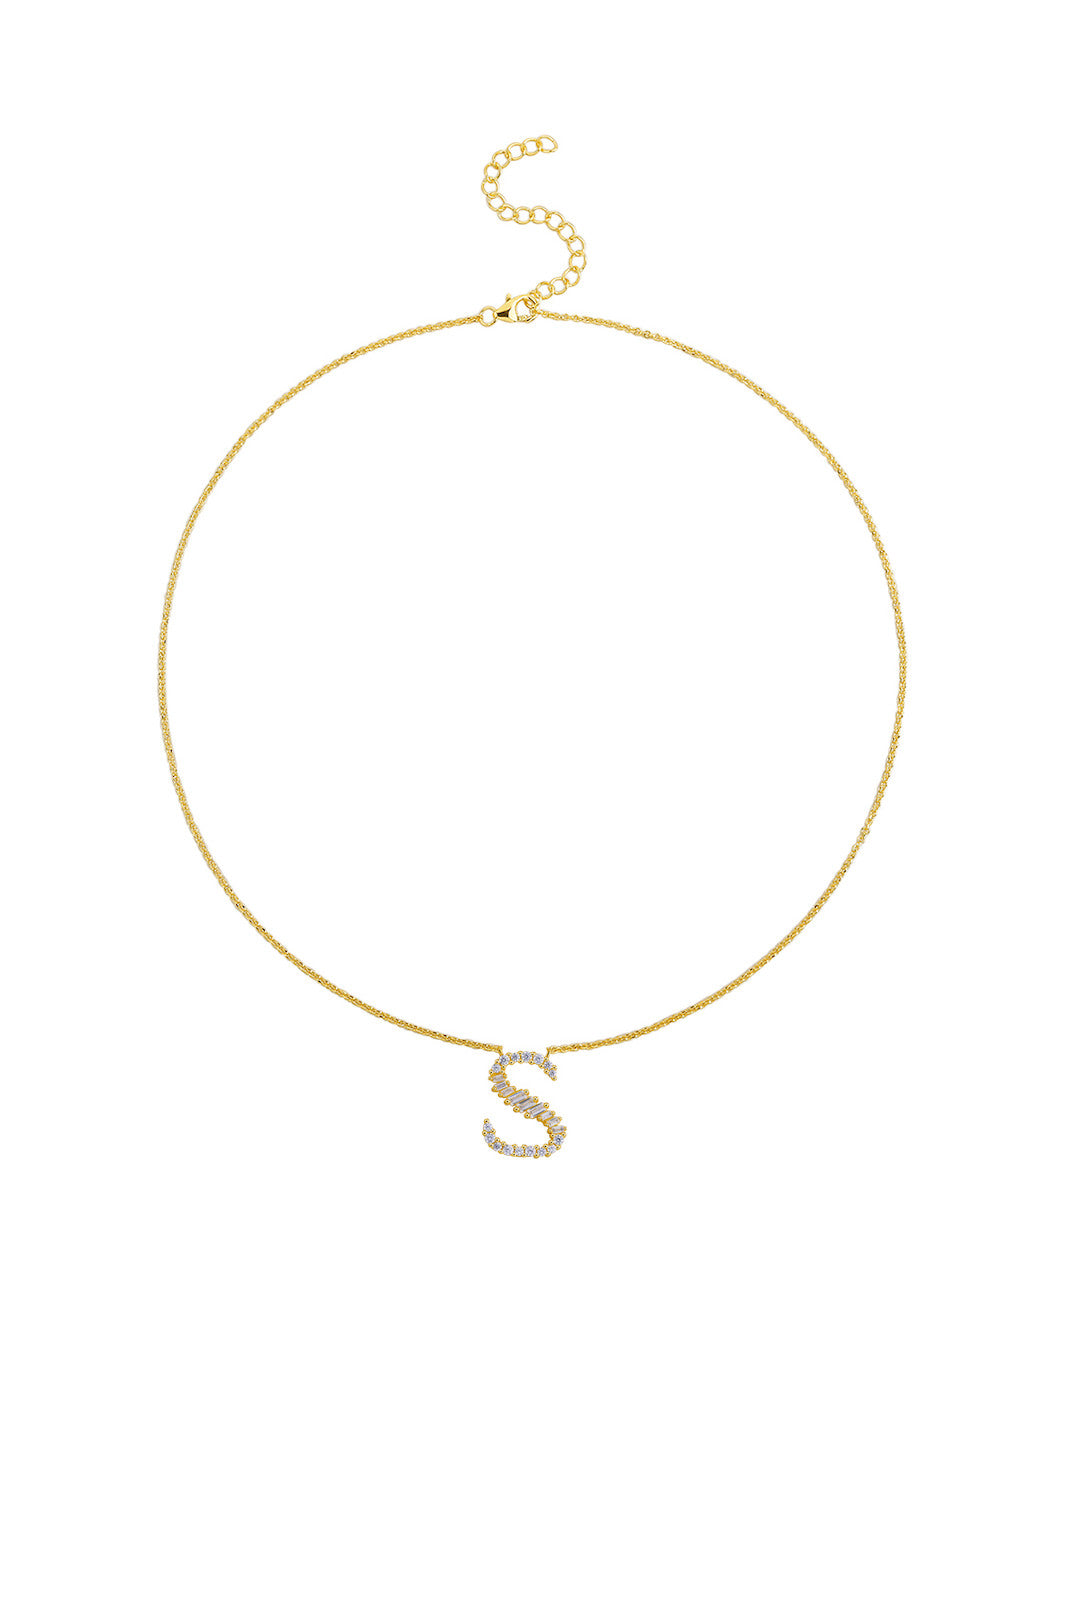 Gold Plated Sterling Silver Initial Necklace - Letter S Detail